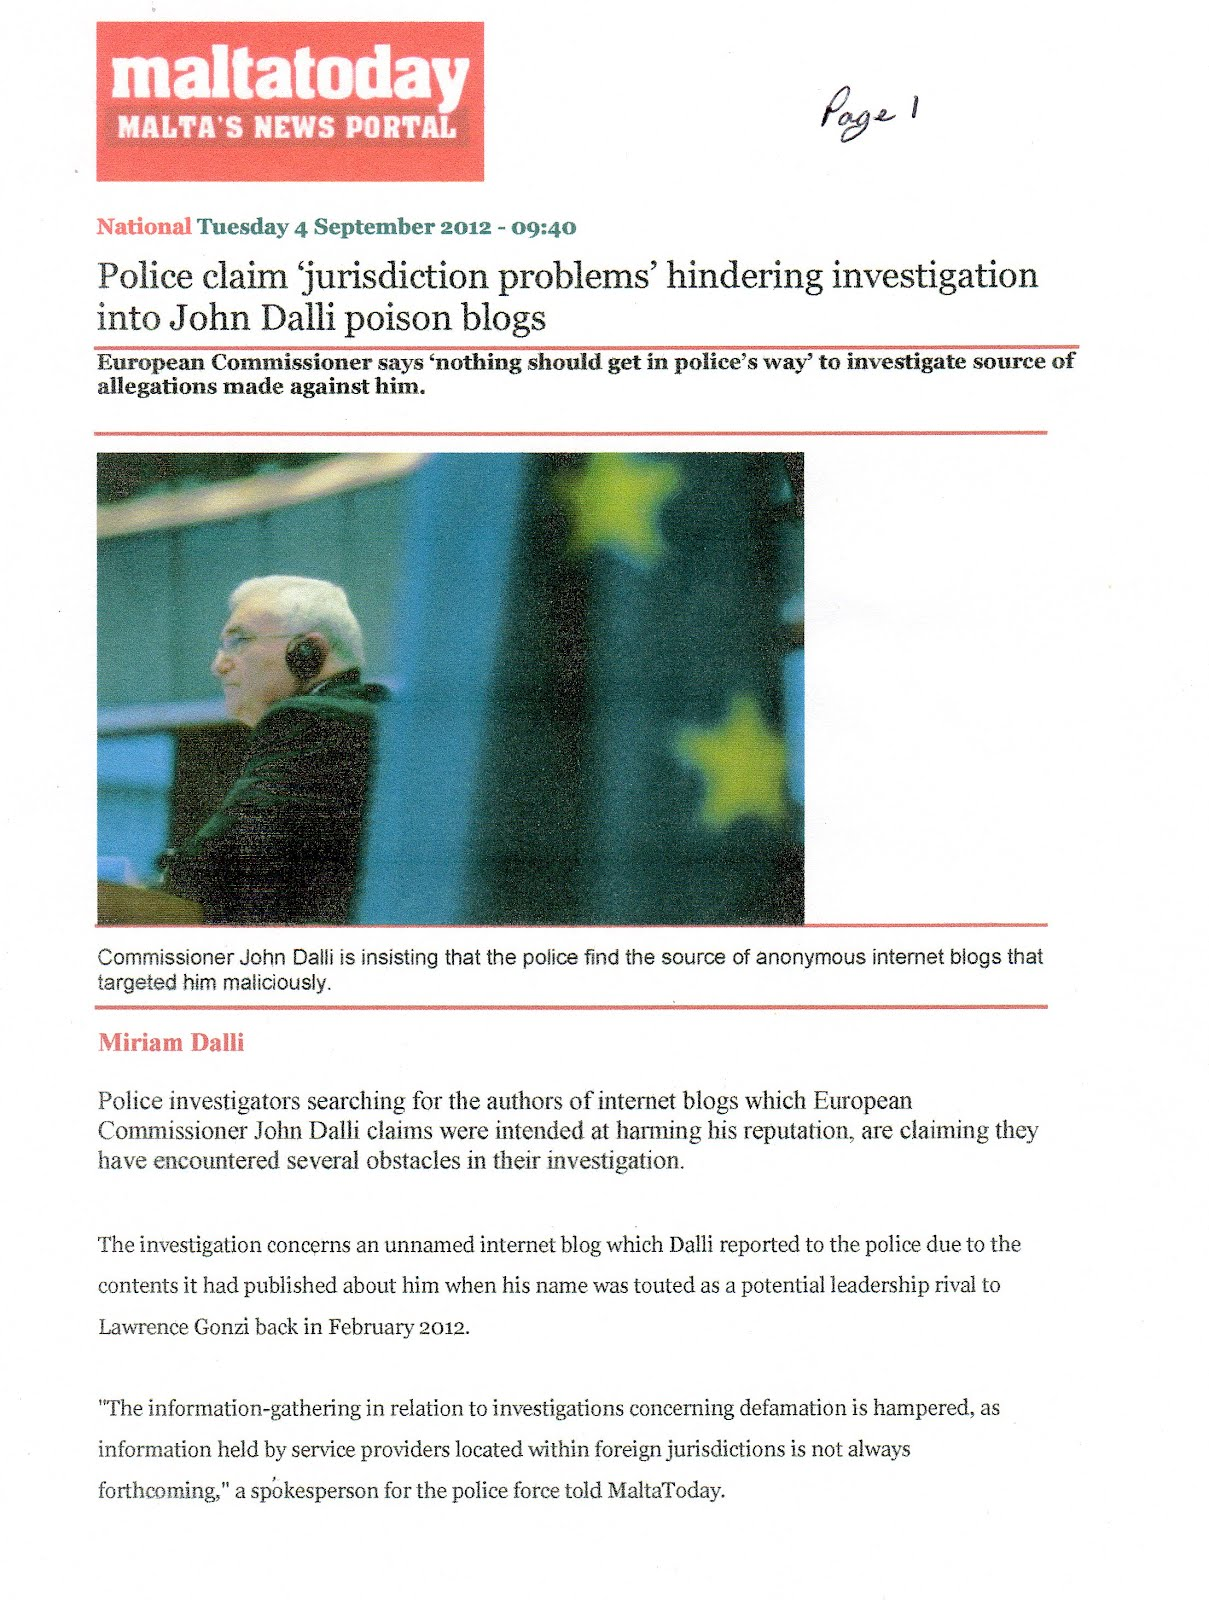 P1 - John Dalli Reports Blogs To Police